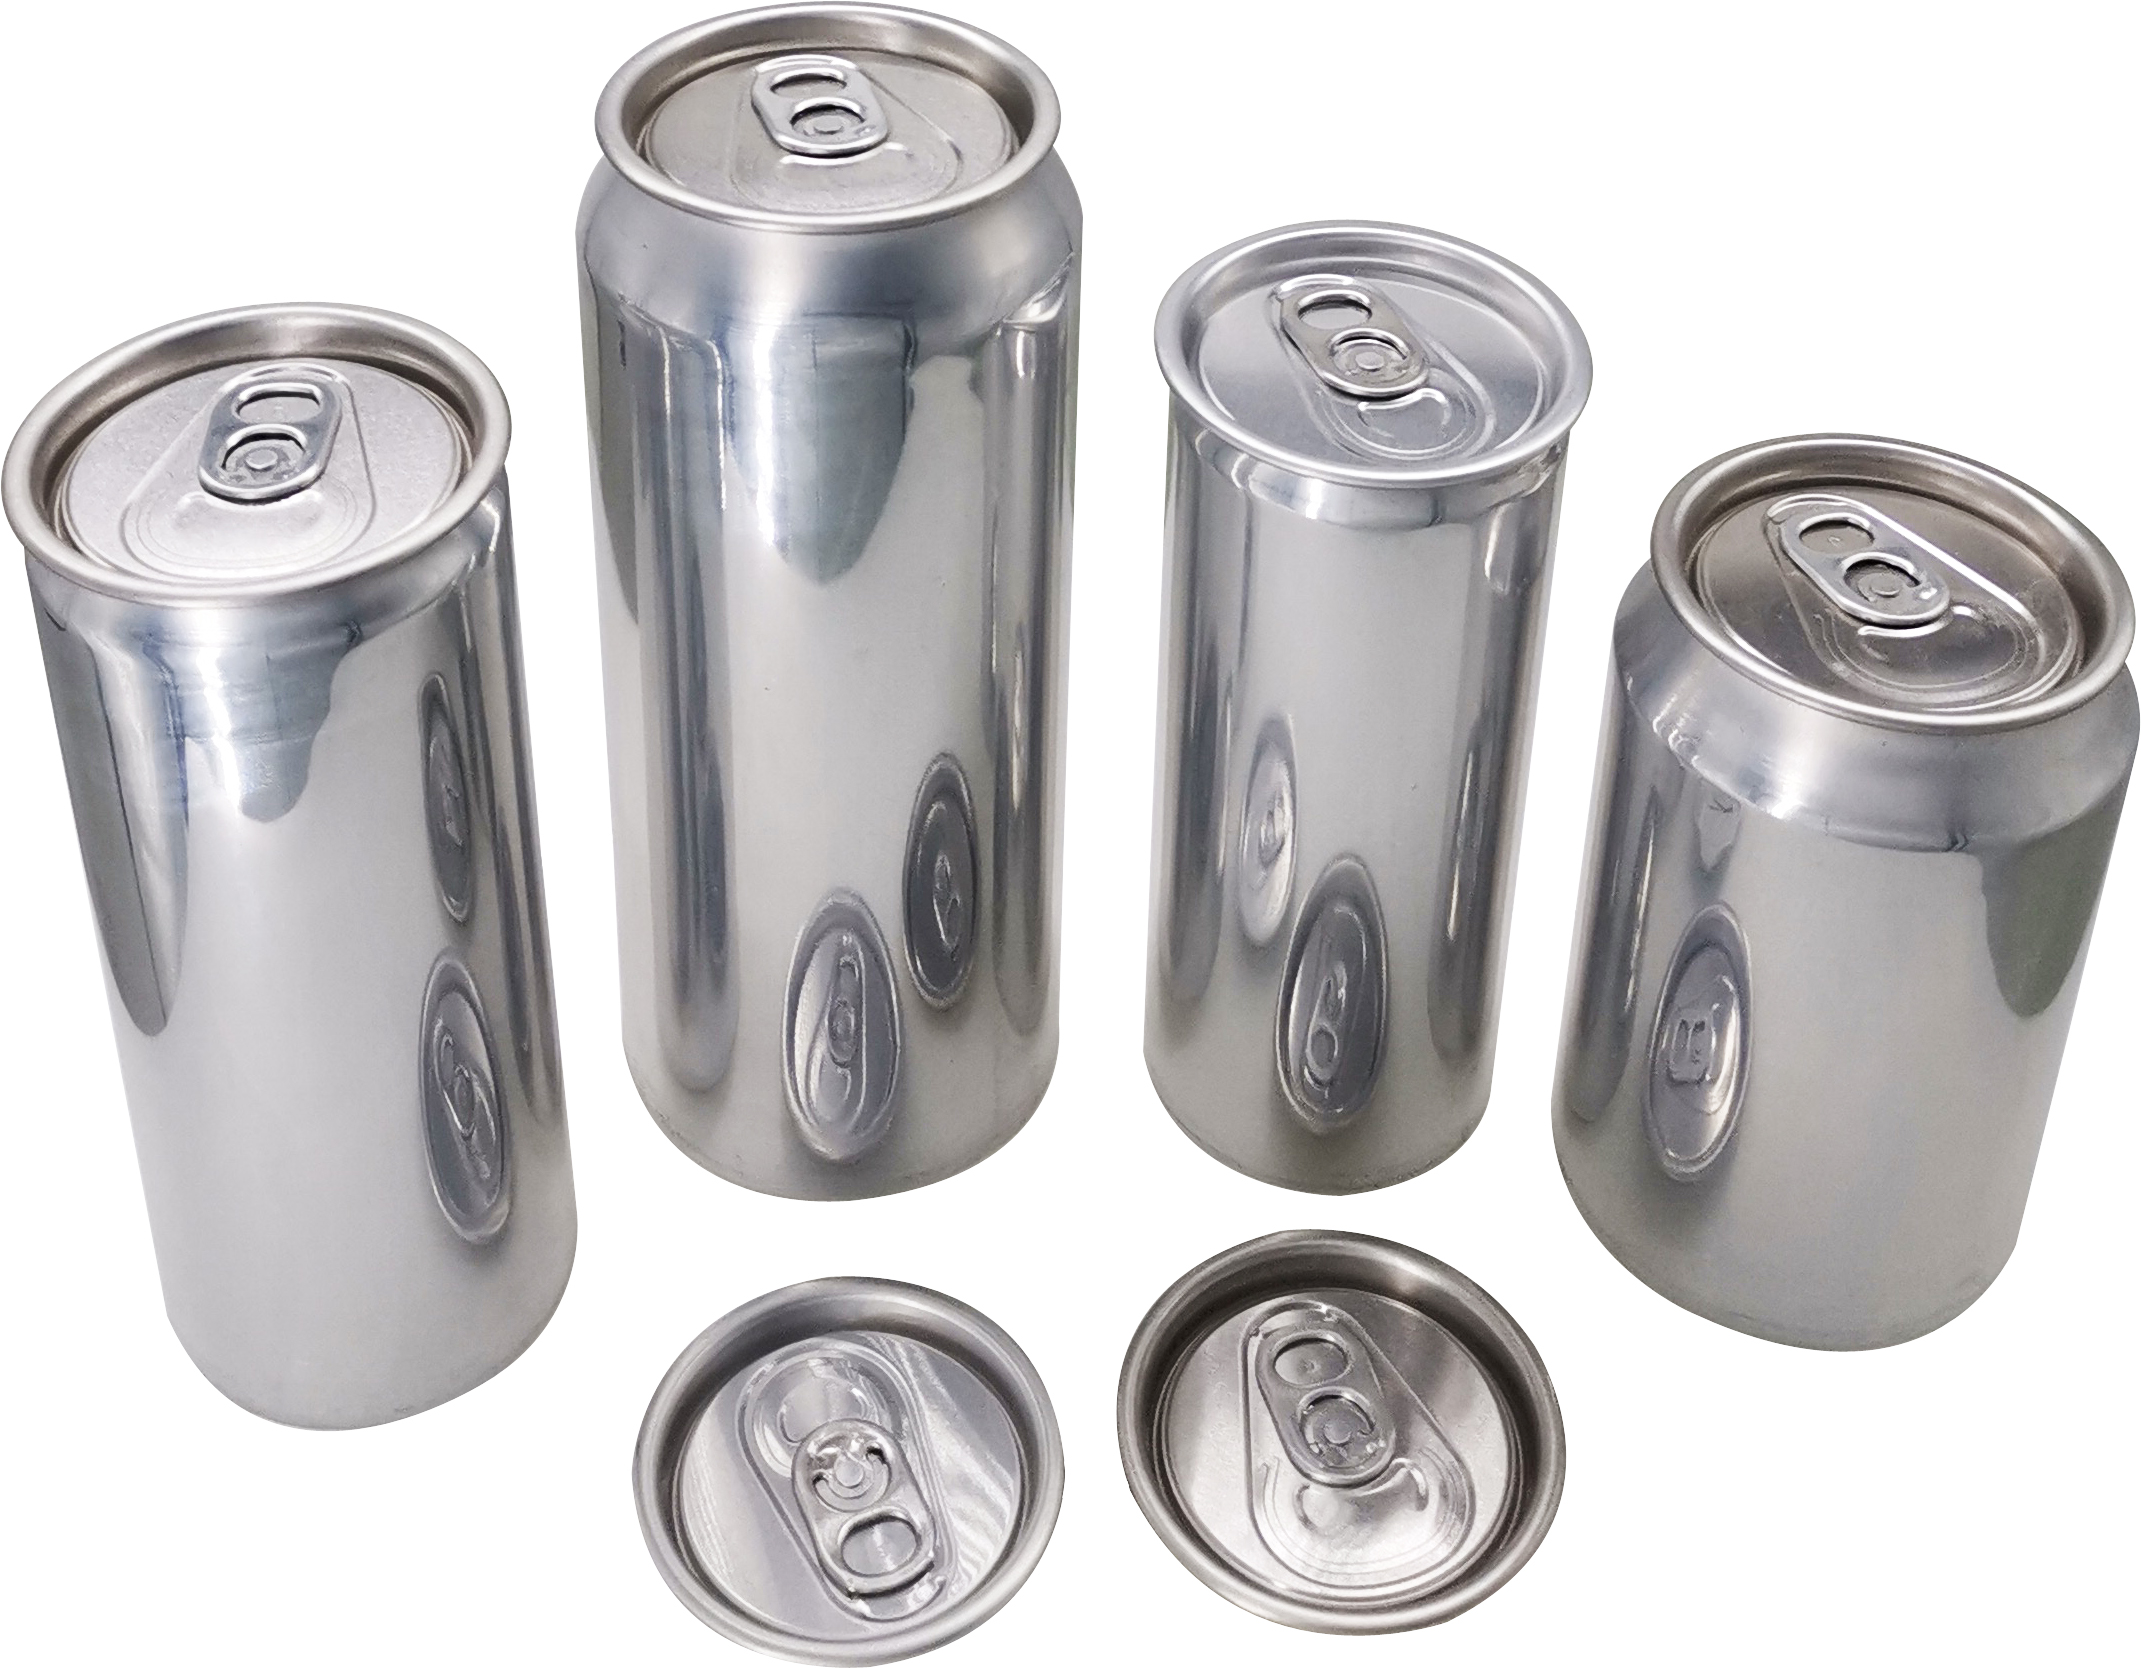 milk cans with lids